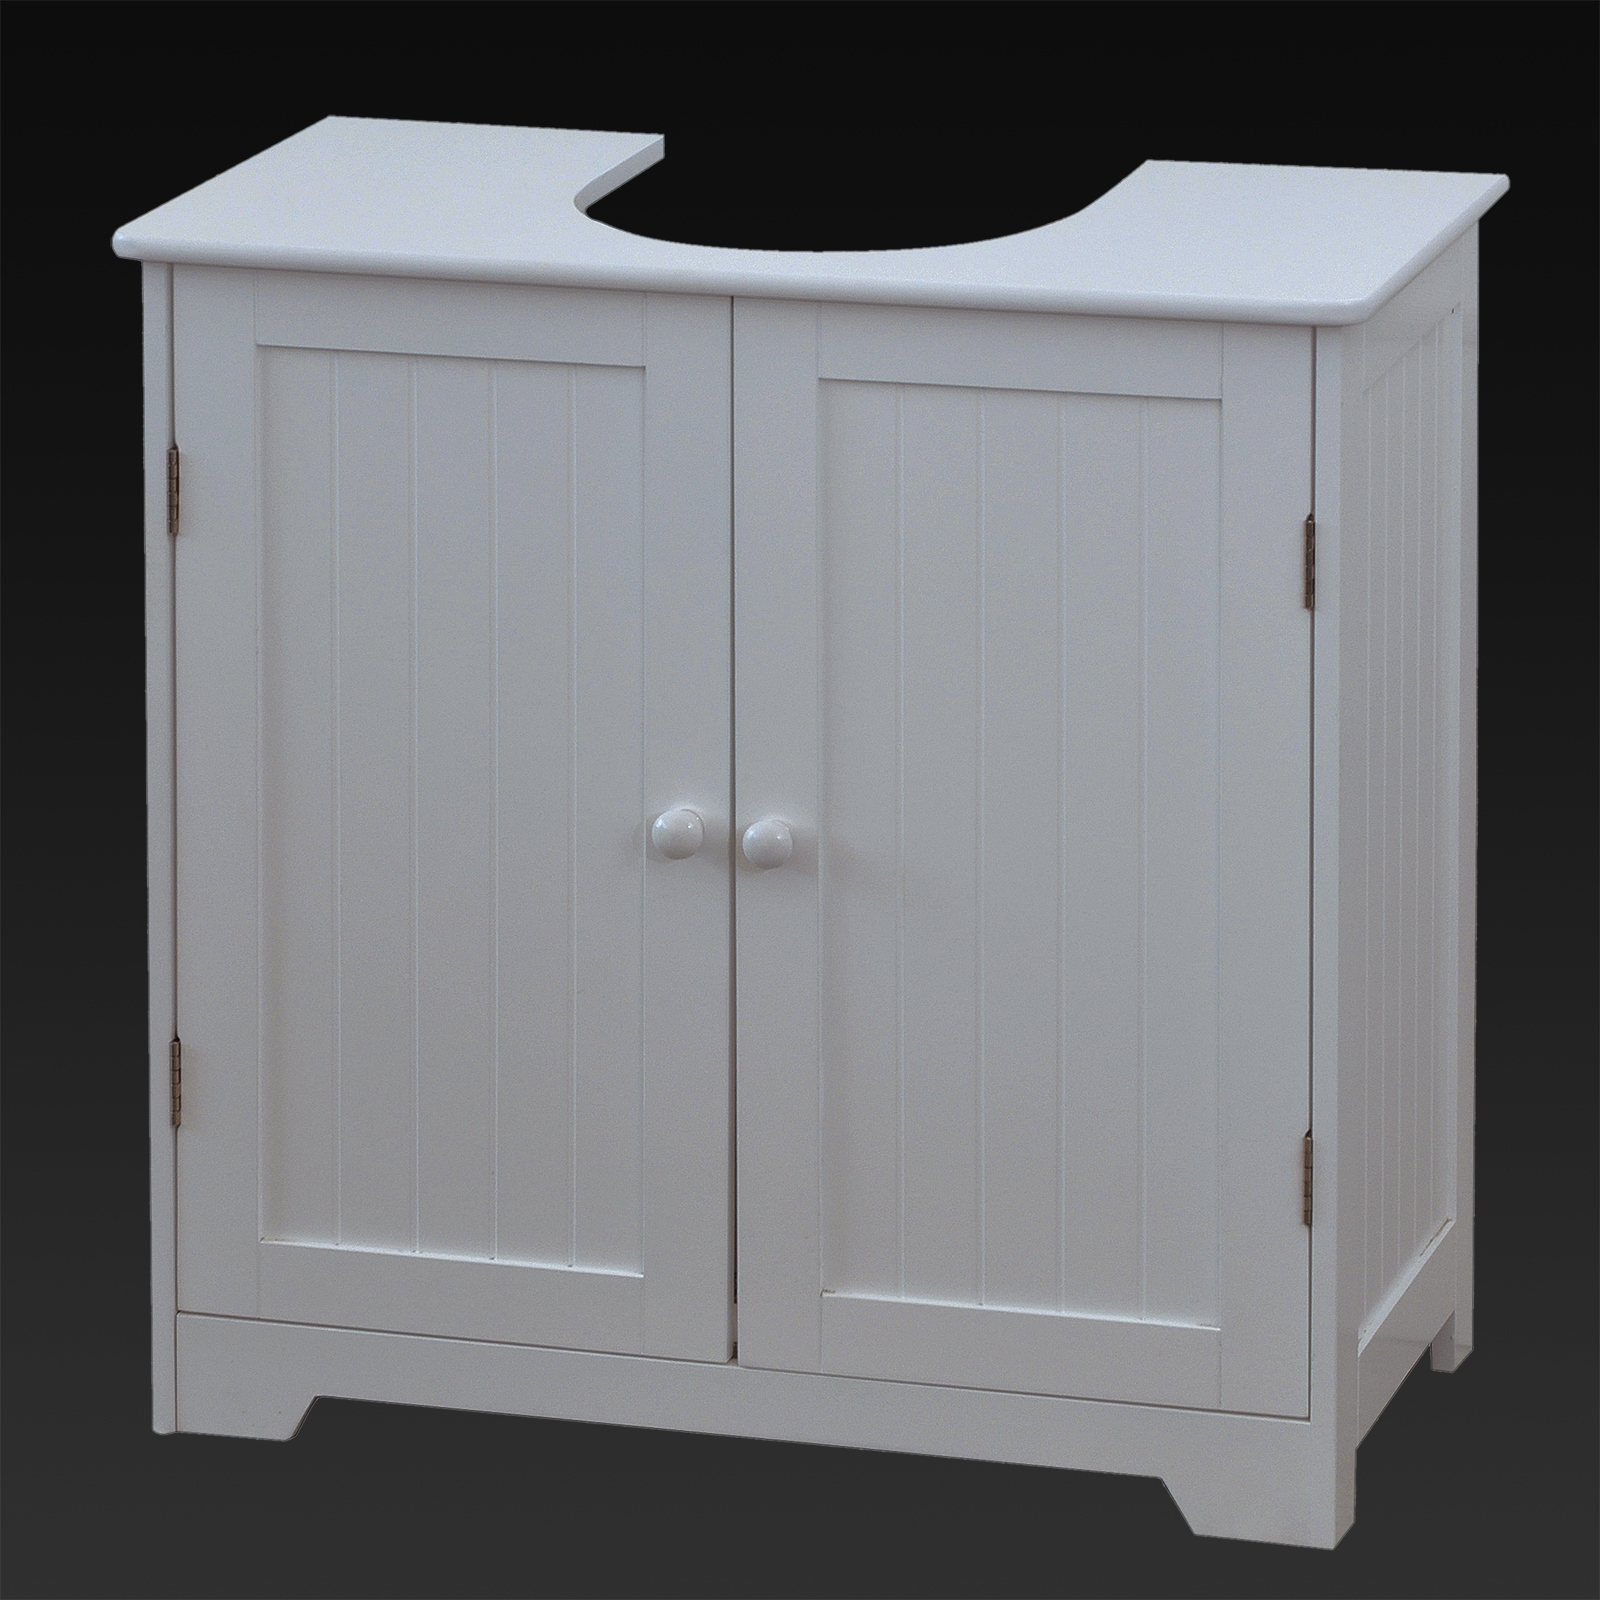 Cloakroom under sink cupboard polycarbonate sheet manufacturers